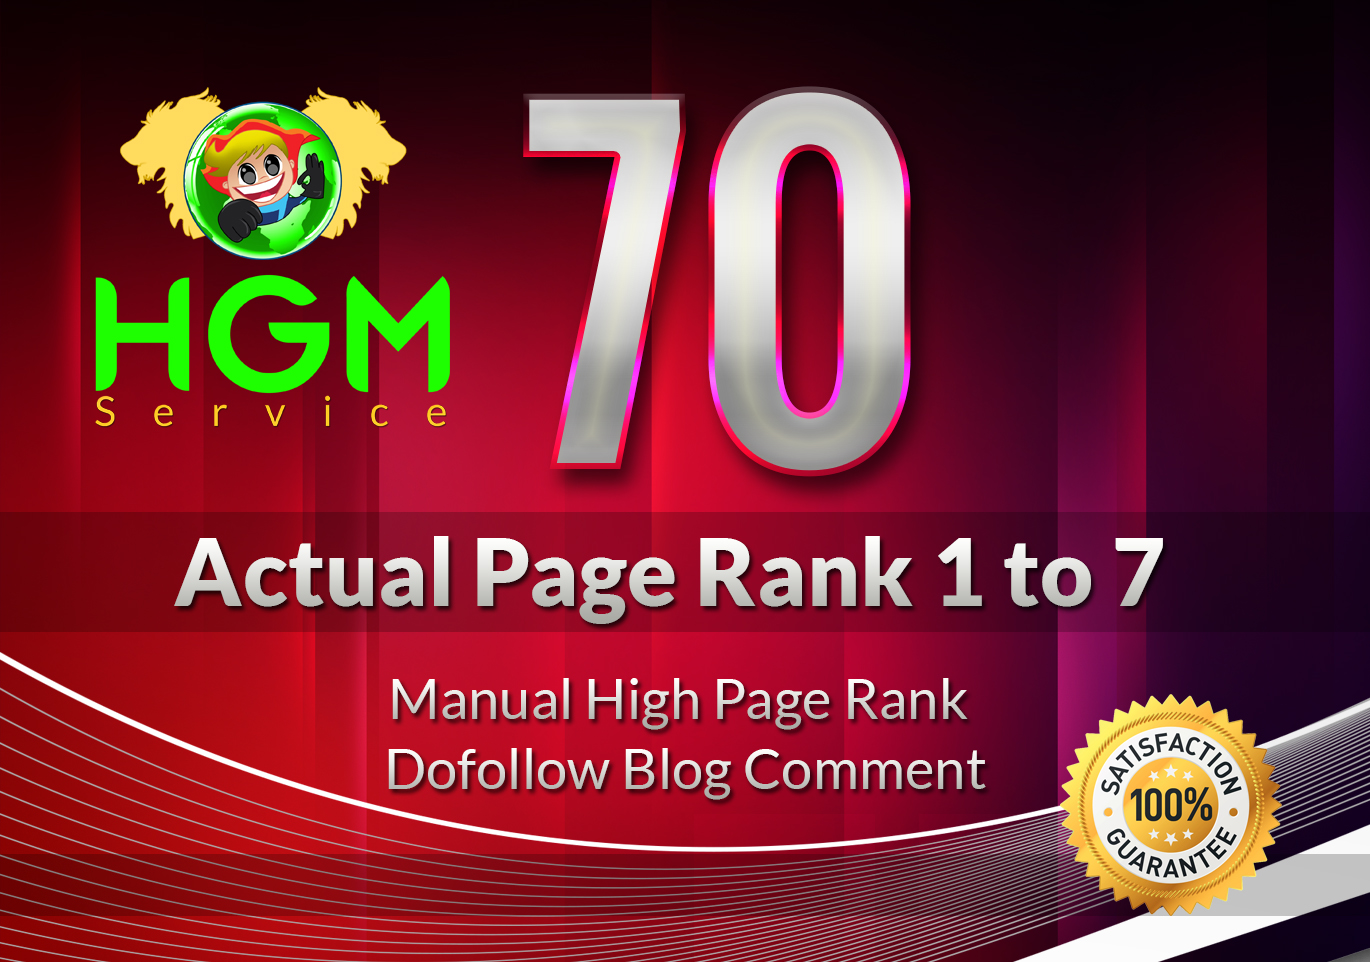 I Will Do 70 Manual DoFollow Blog Comment On Actual Page Rank 1 Up To 7